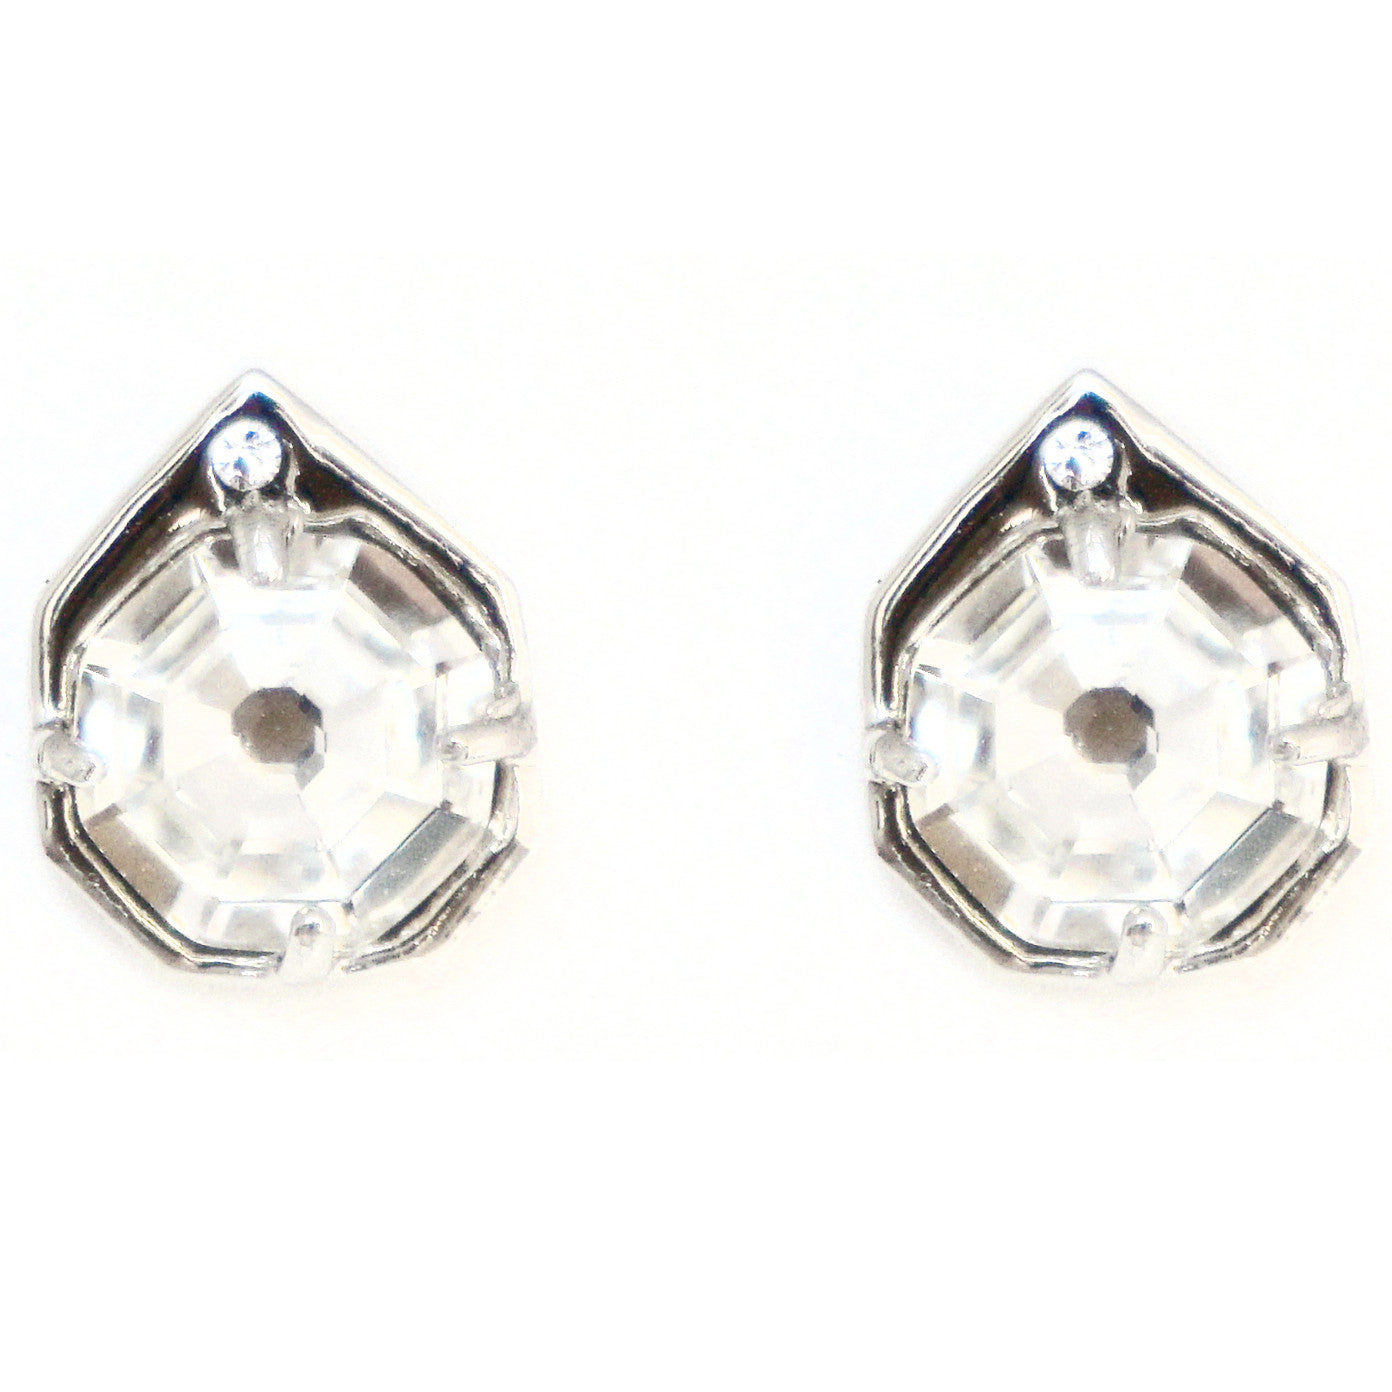 CAROLYN COLBY - SILVER ECLIPSE STUD EARRINGS